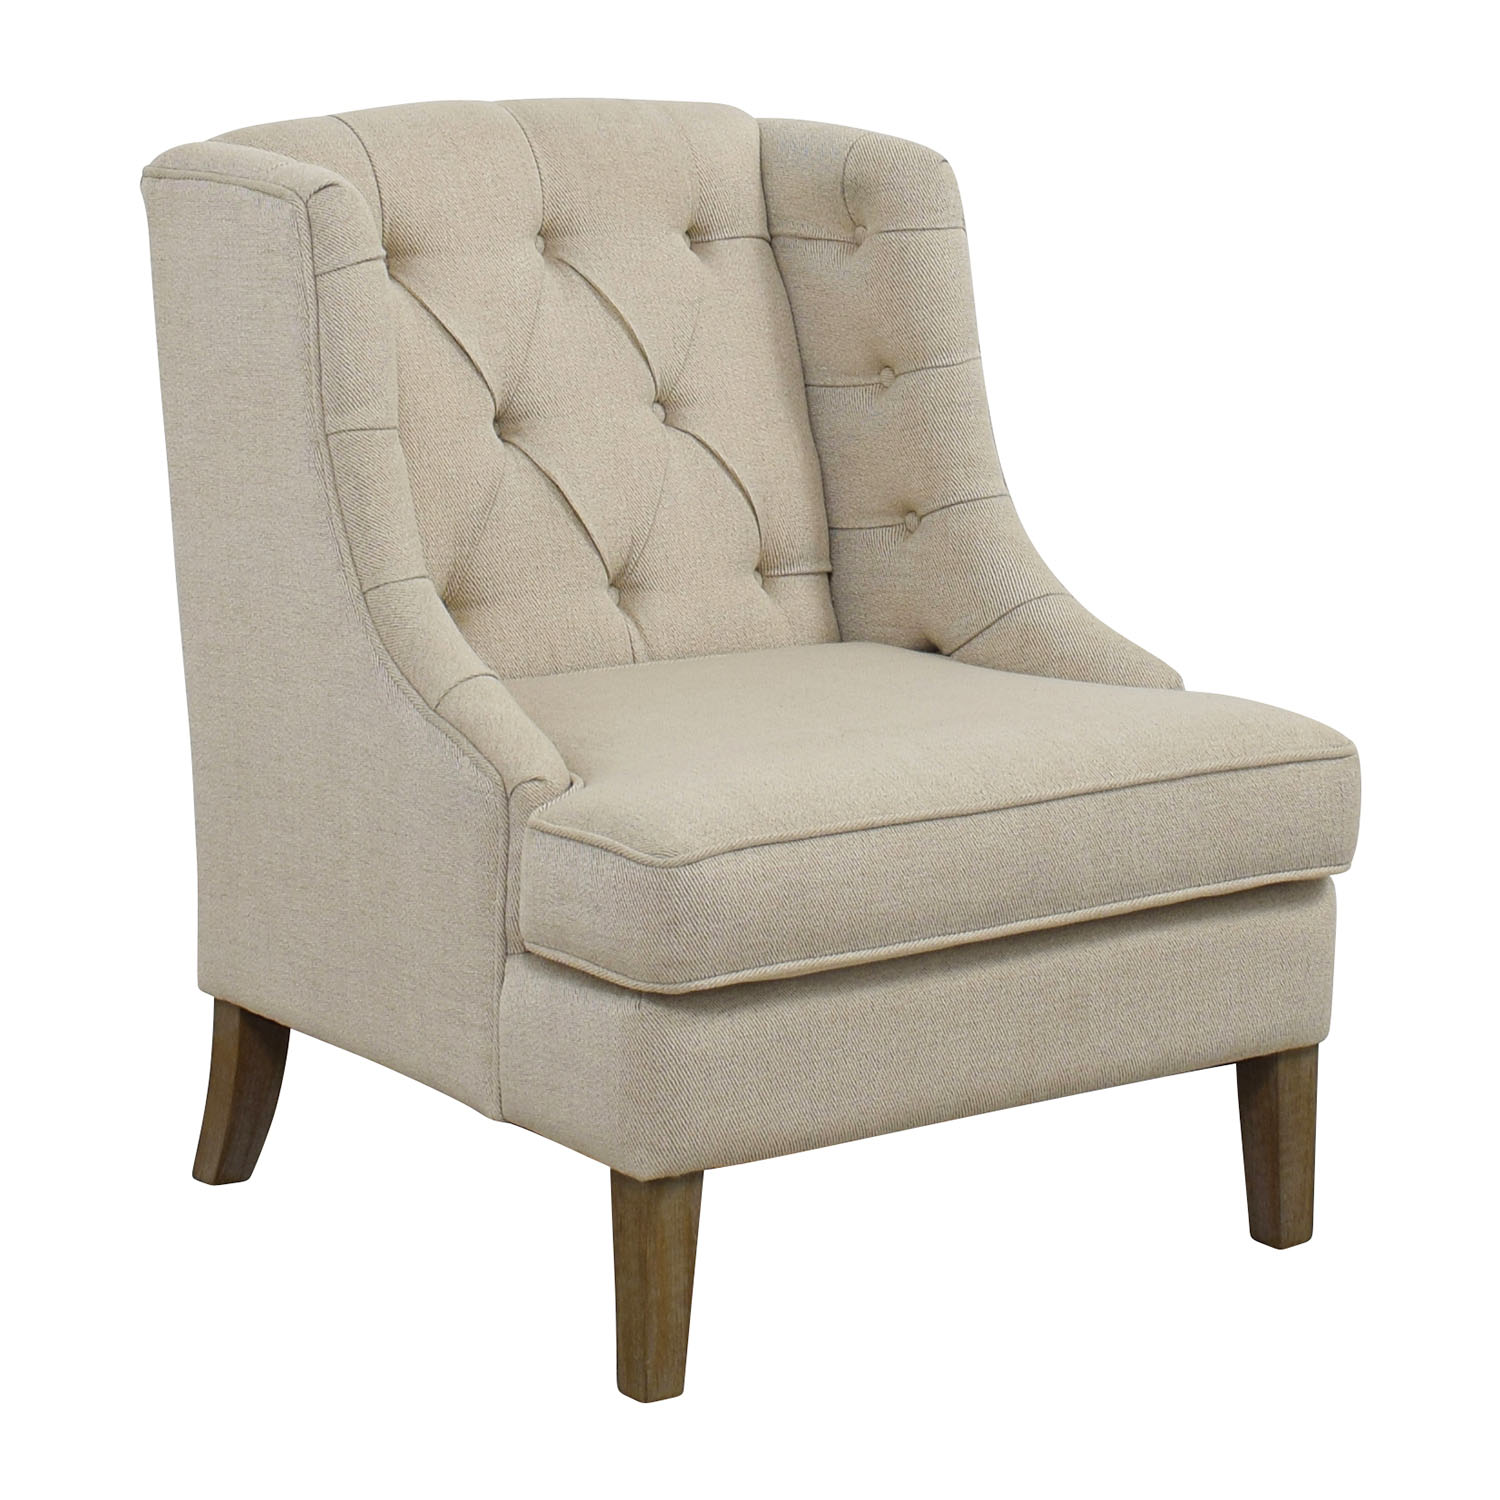 Madison Park Madison Park Tufted Beige Arm Chair second hand